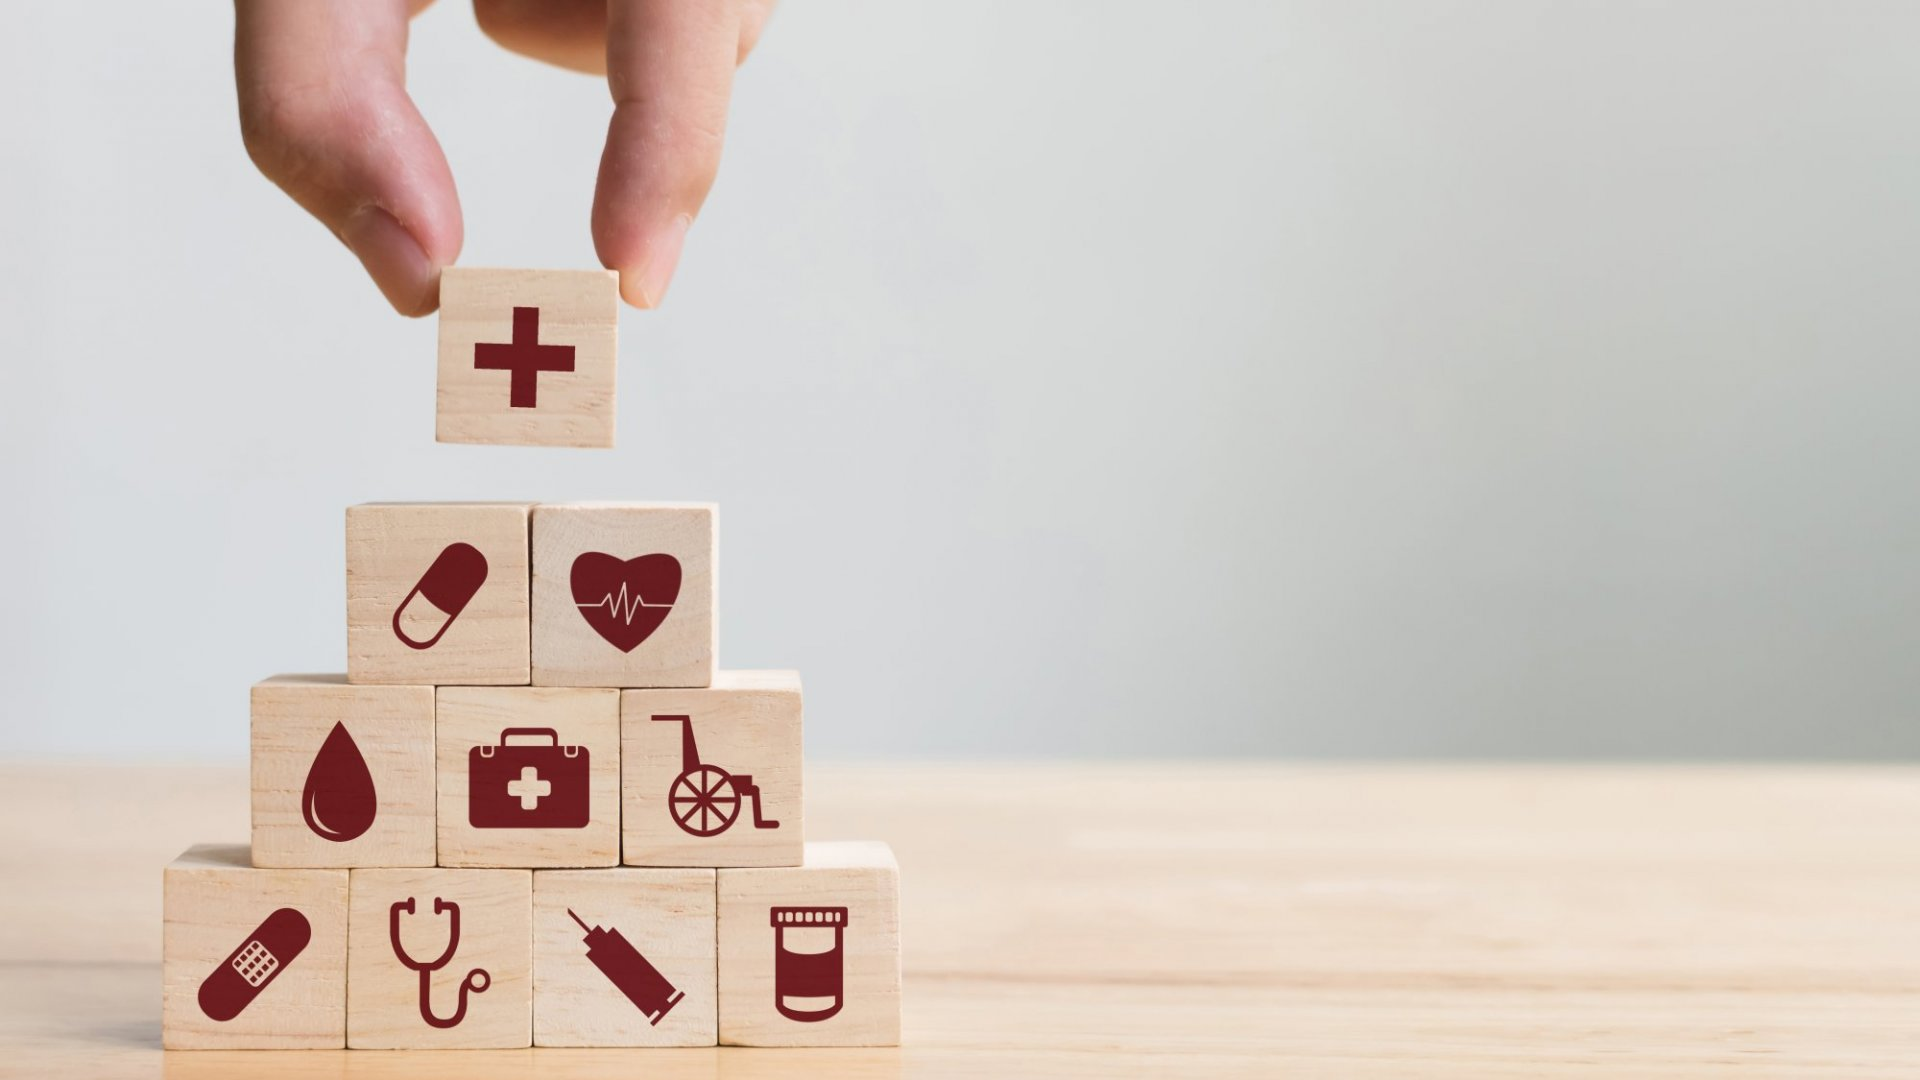 HIPAA is Stifling Innovation. Here's How to Change It.